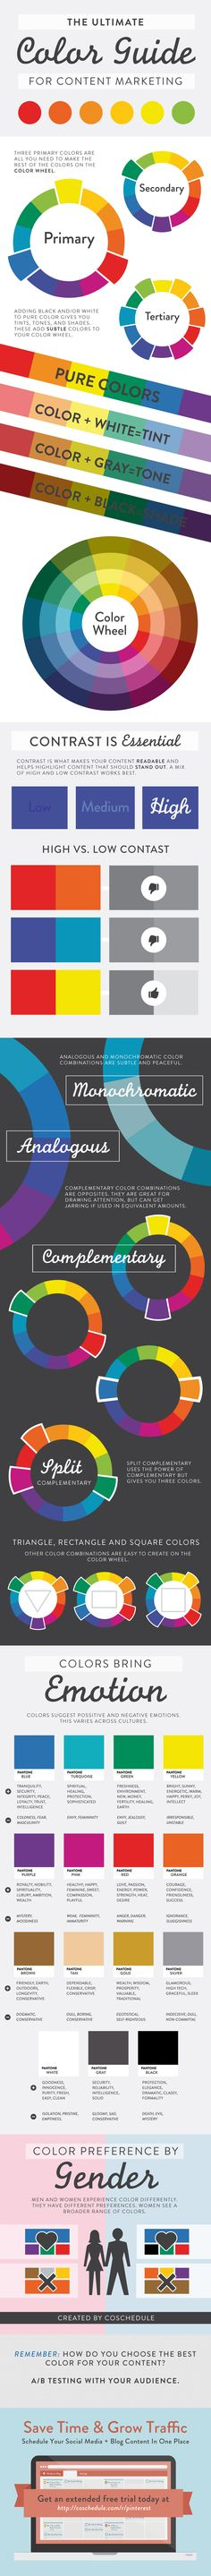 The Ultimative Color Guide for Content Marketing